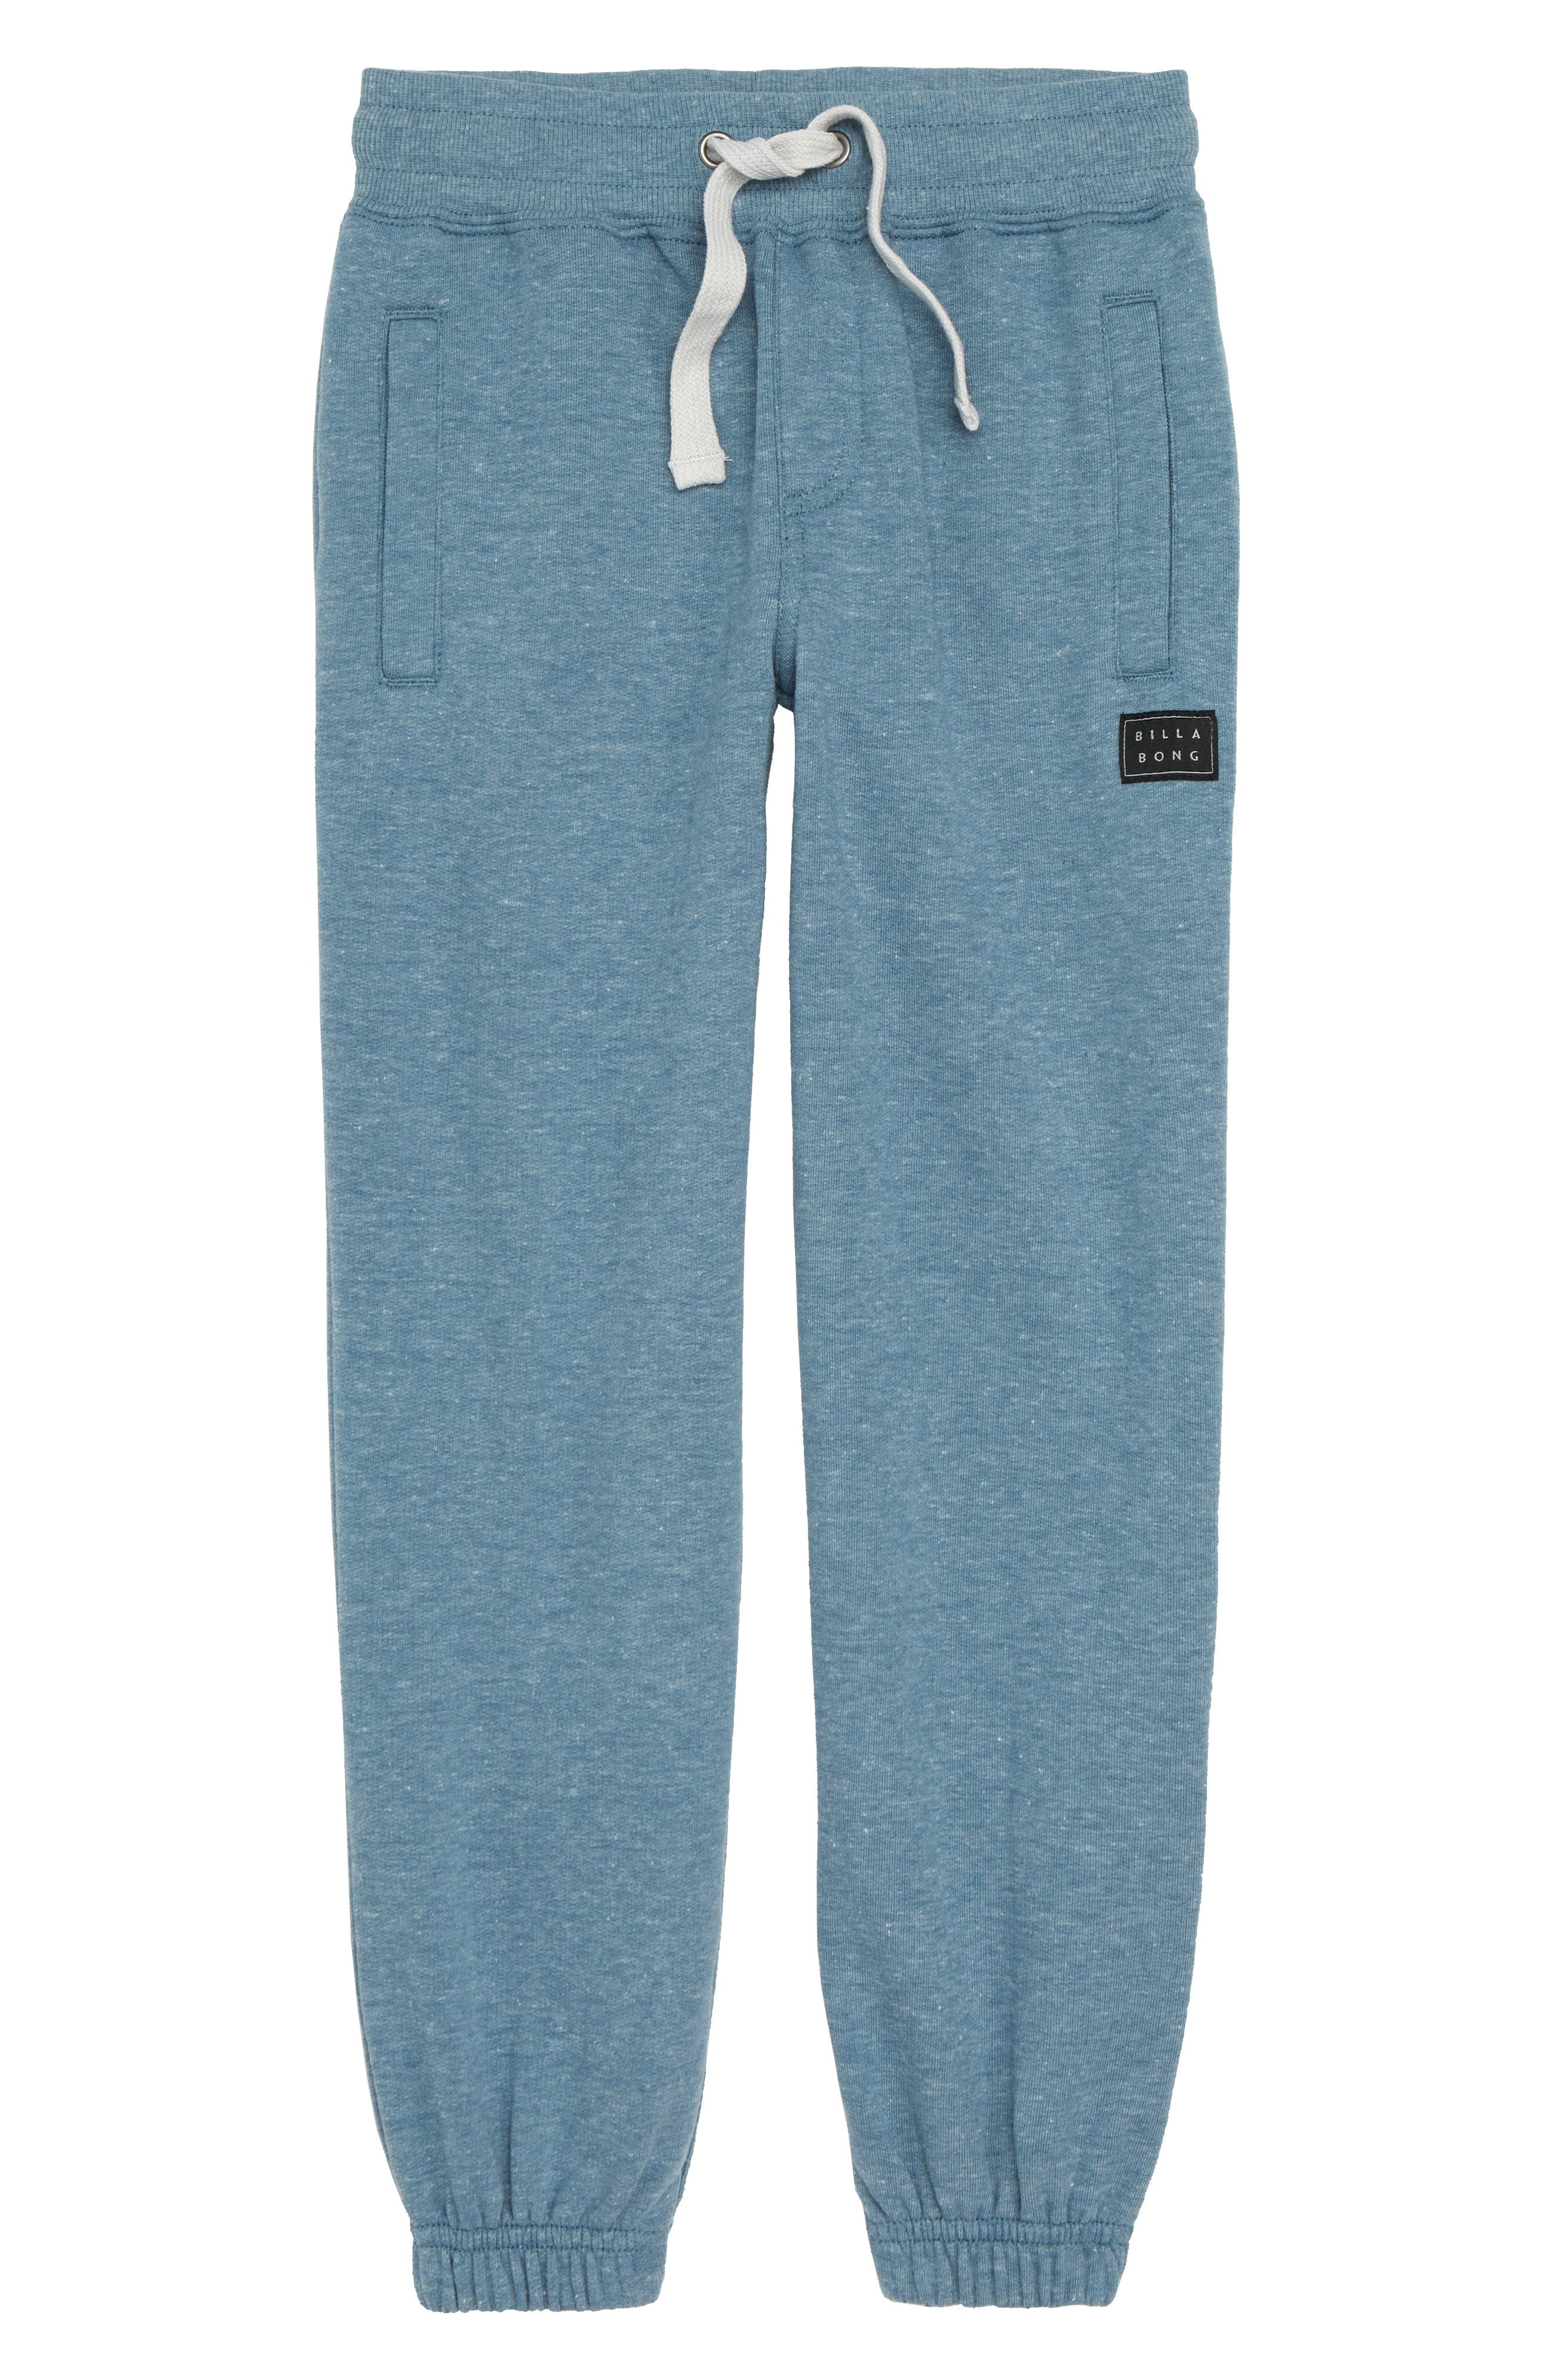 All Day Sweatpants,                             Main thumbnail 1, color,                             WASHED BLUE